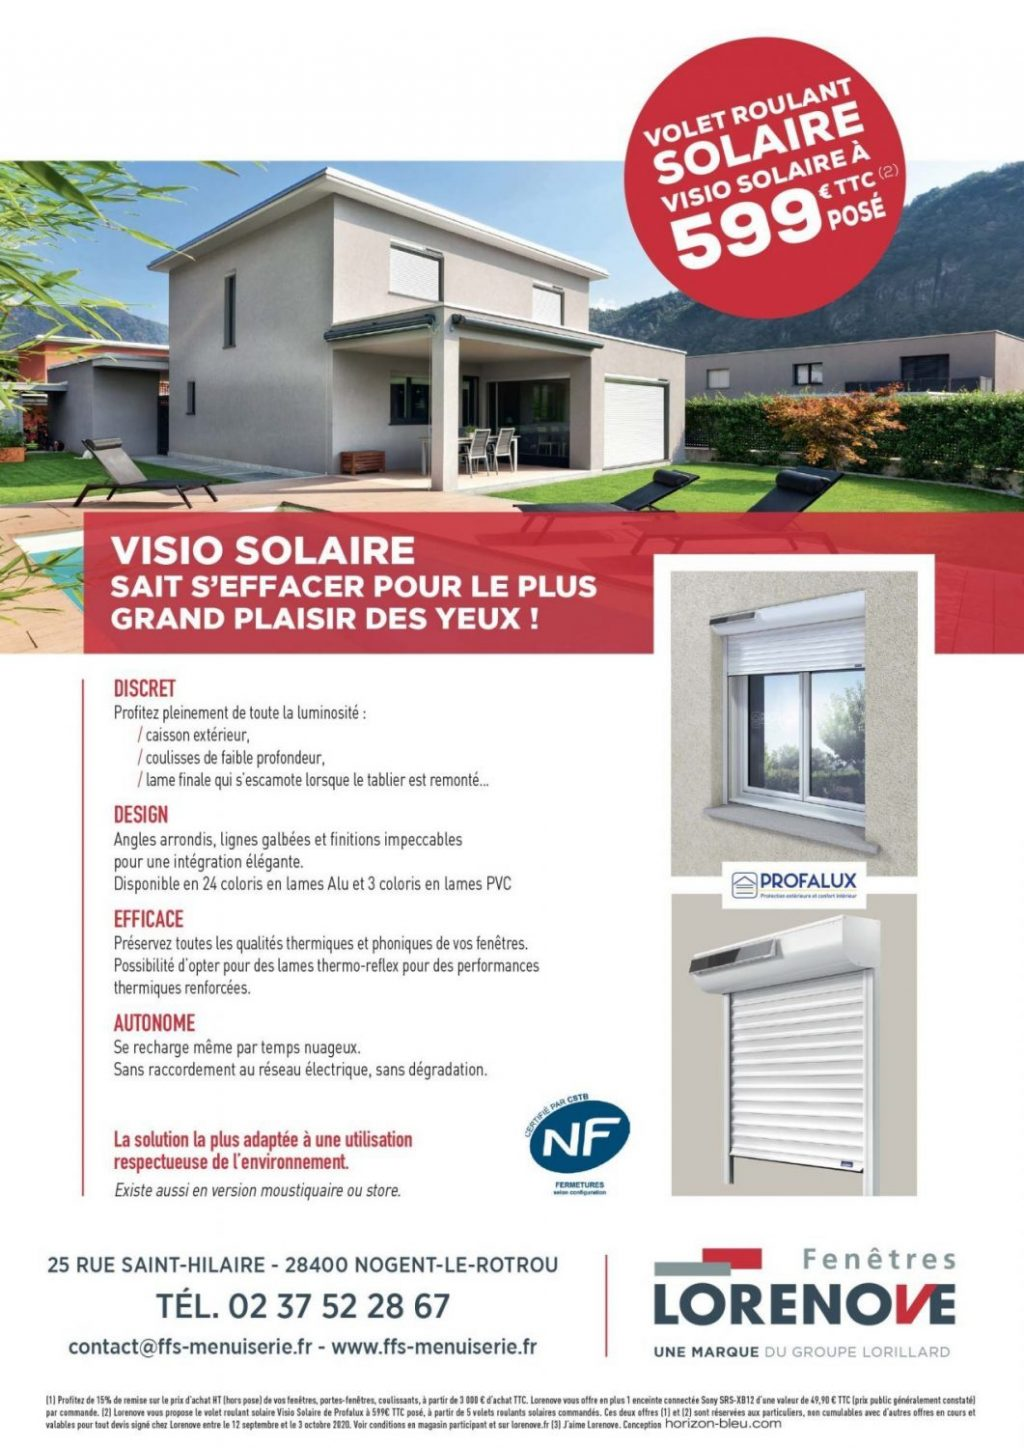 Promotion visio solaire